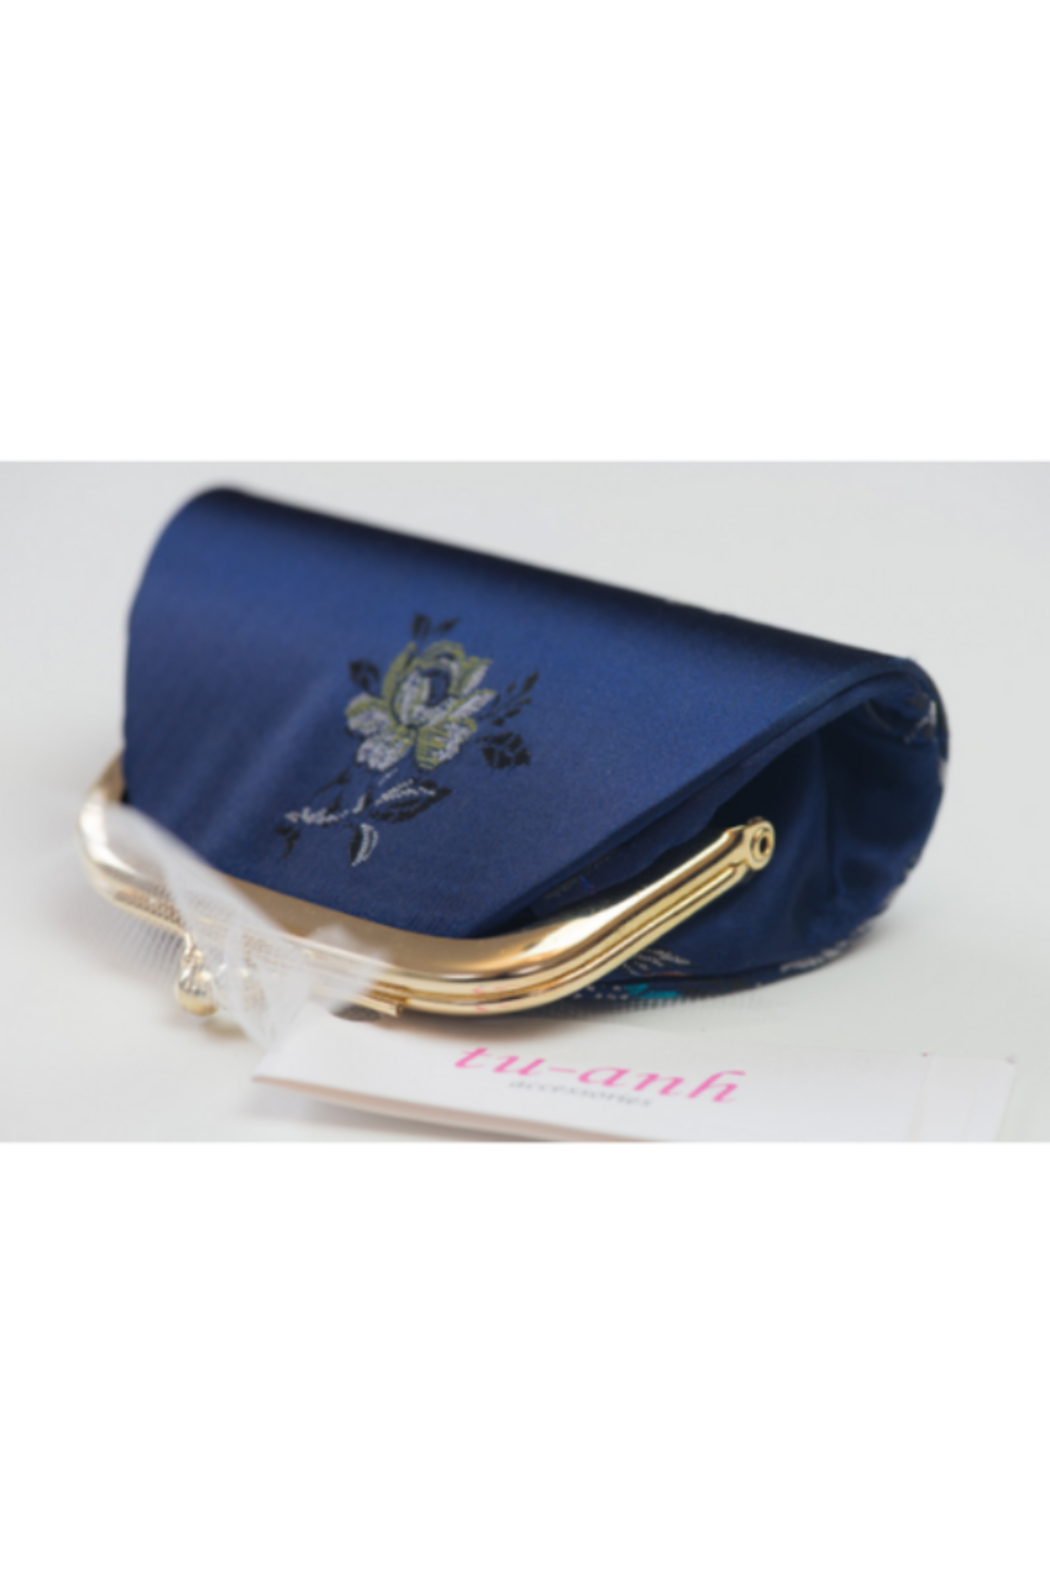 tu-anh Coin Purse Blue Floral - Front Full Image